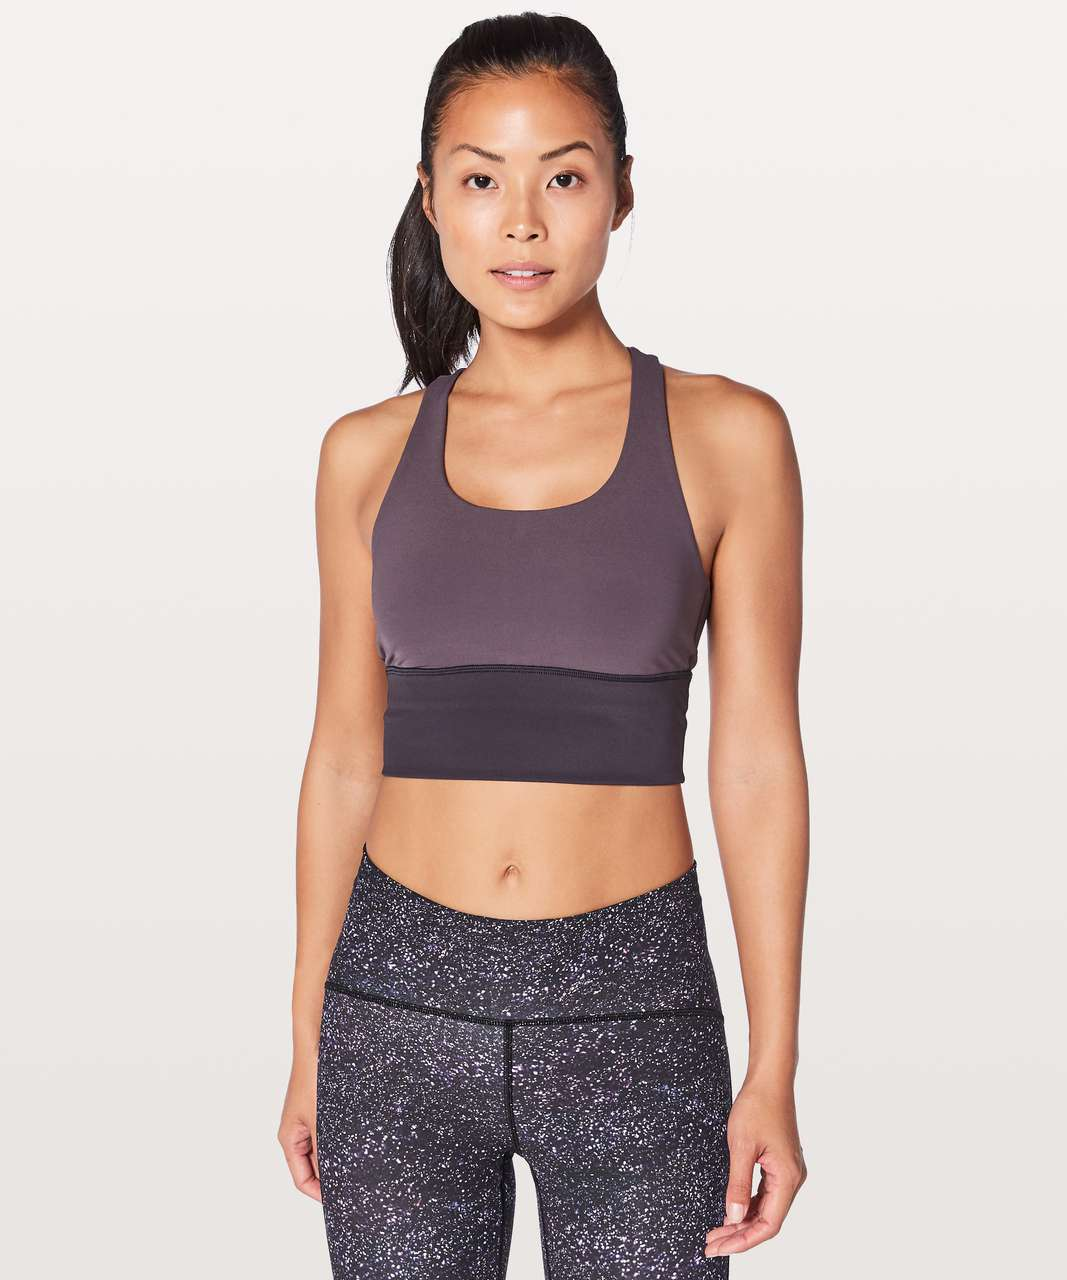 Lululemon Invigorate Bra Long Line - Black Currant / Boysenberry